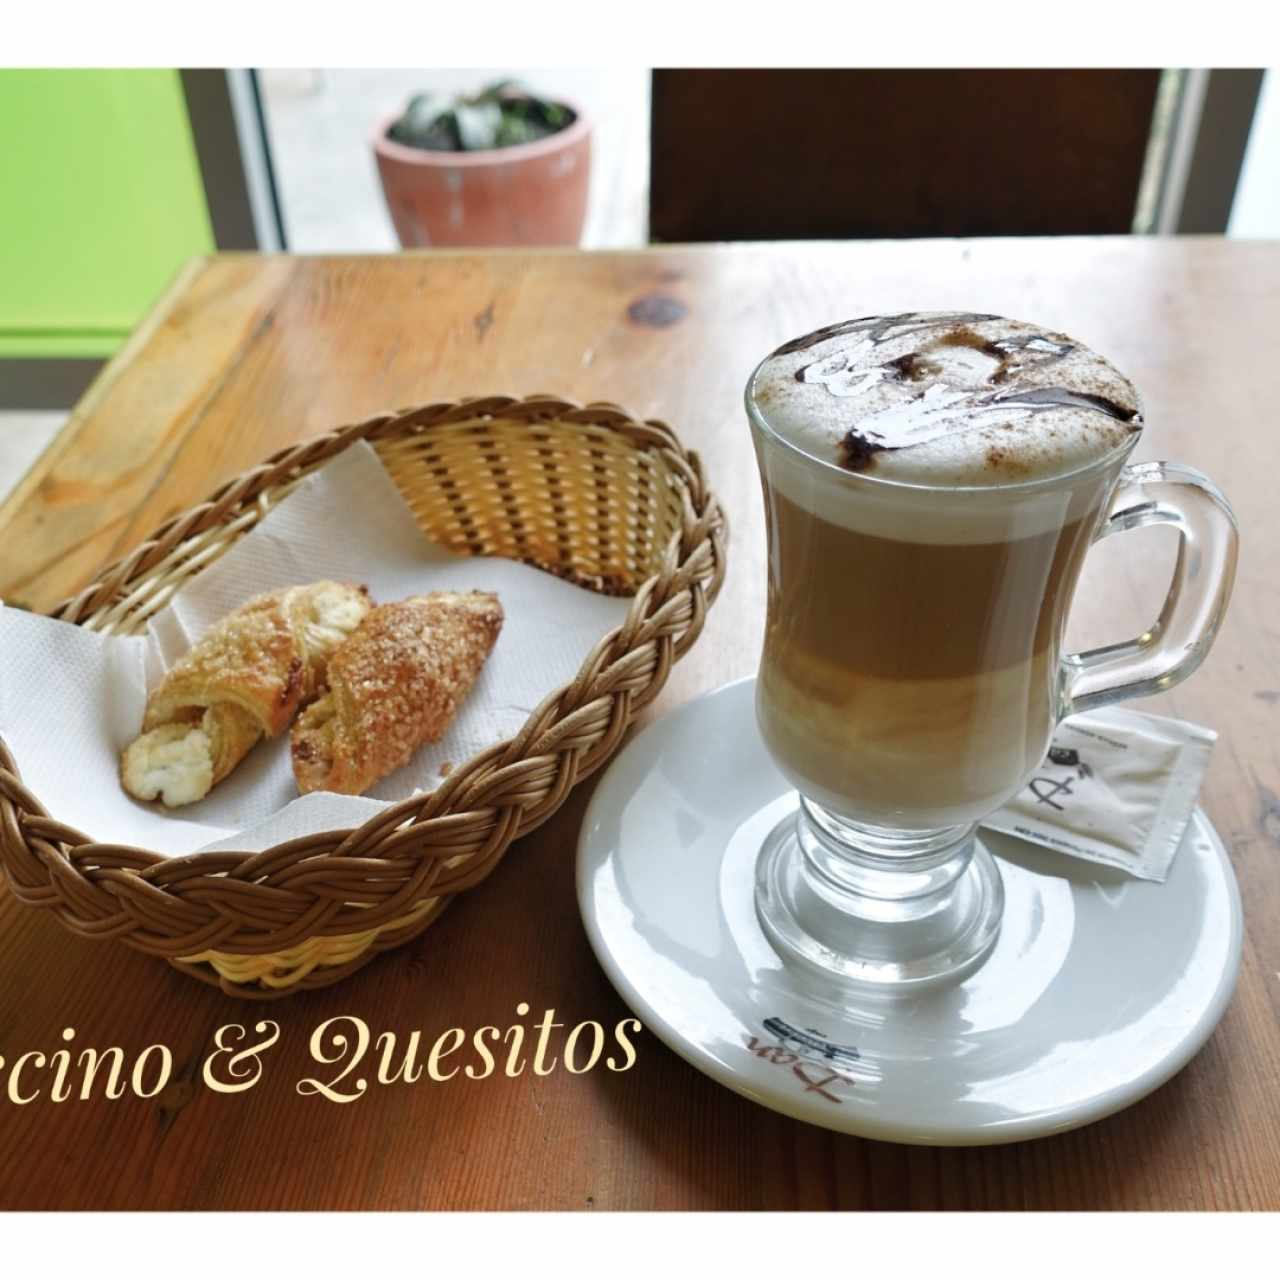 Capuccino y quesitos